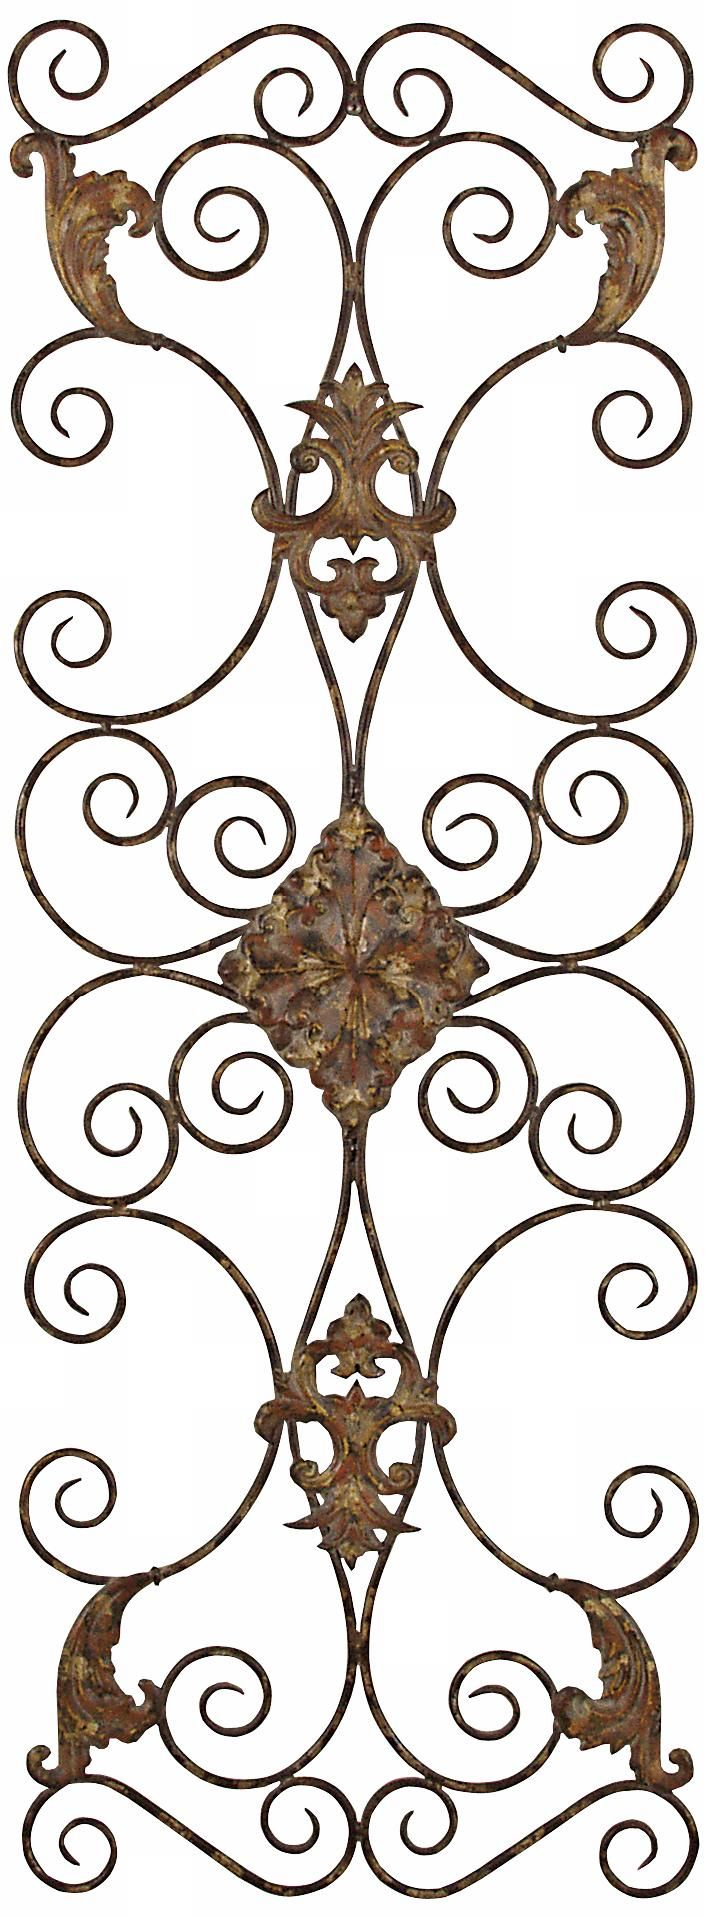 Uttermost fayola hand forged metal 50 high wall decor forging uttermost fayola hand forged metal 50 high wall decor amipublicfo Gallery